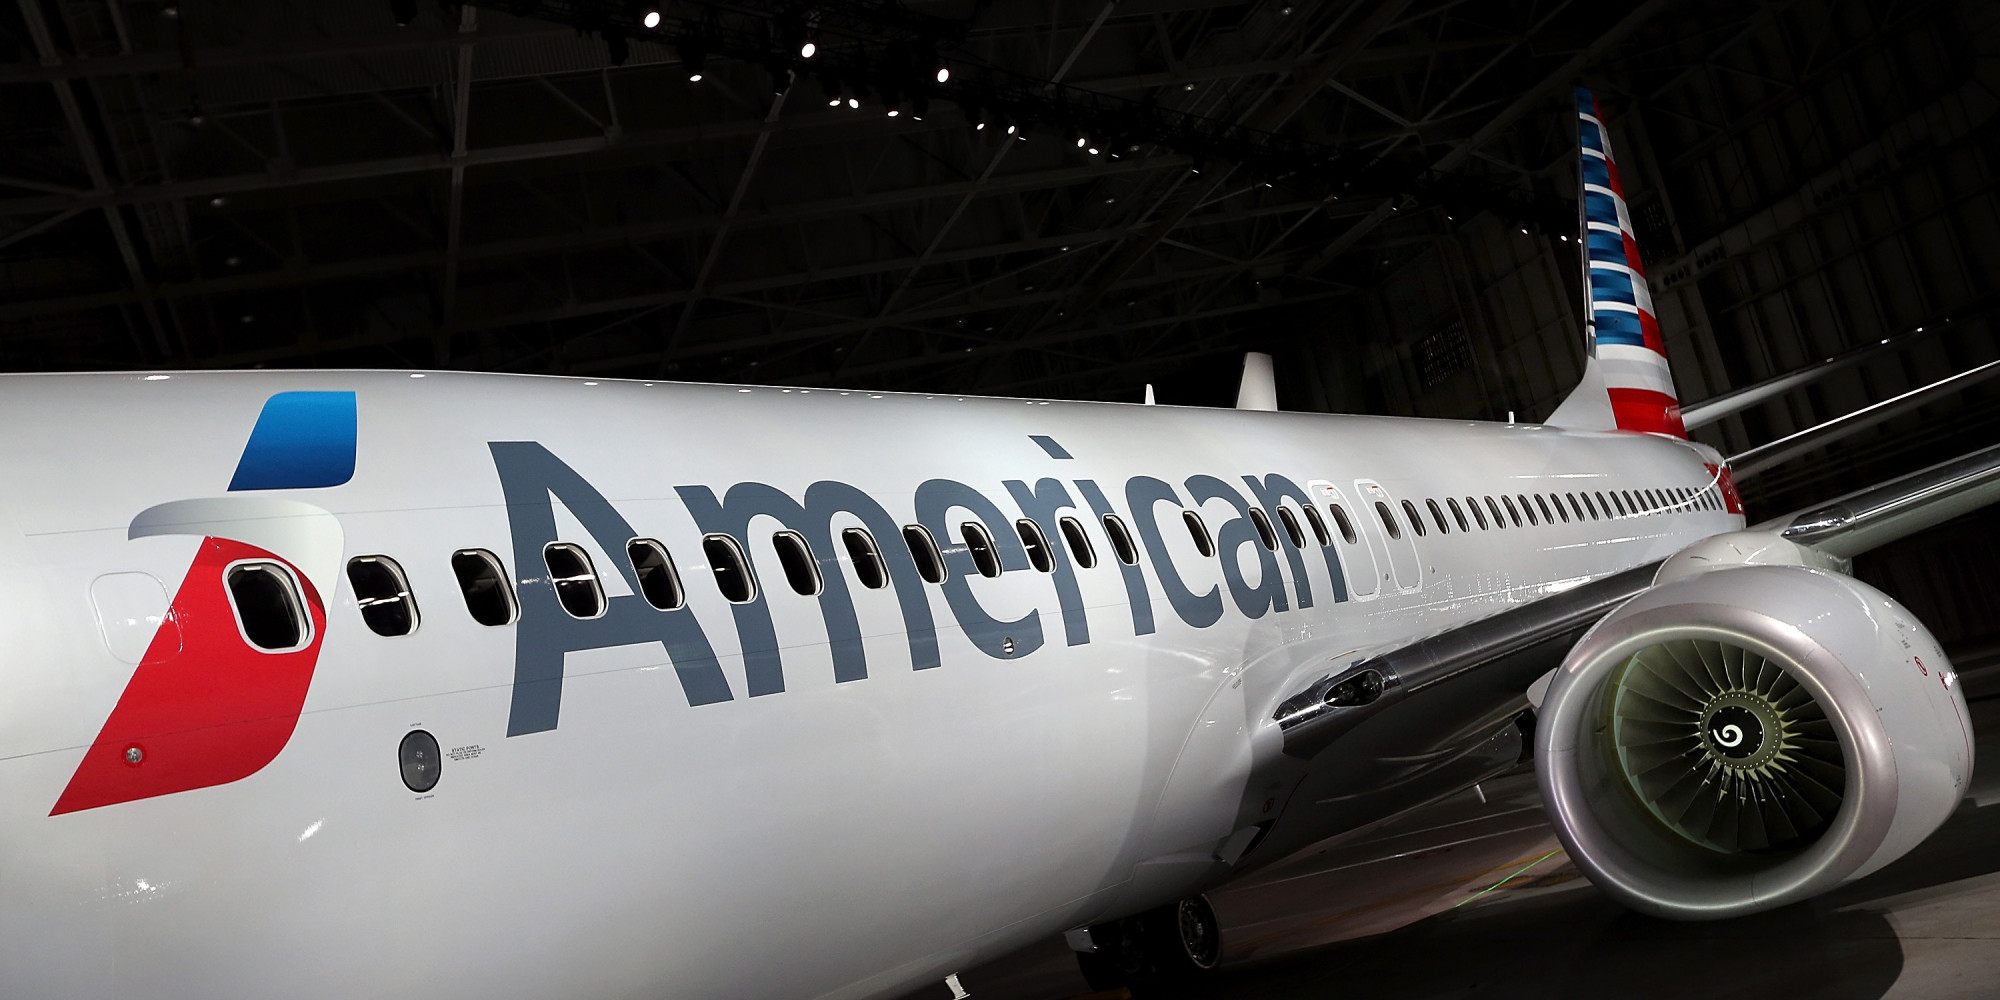 American Airlines Economy Basic Solidifies The Caste